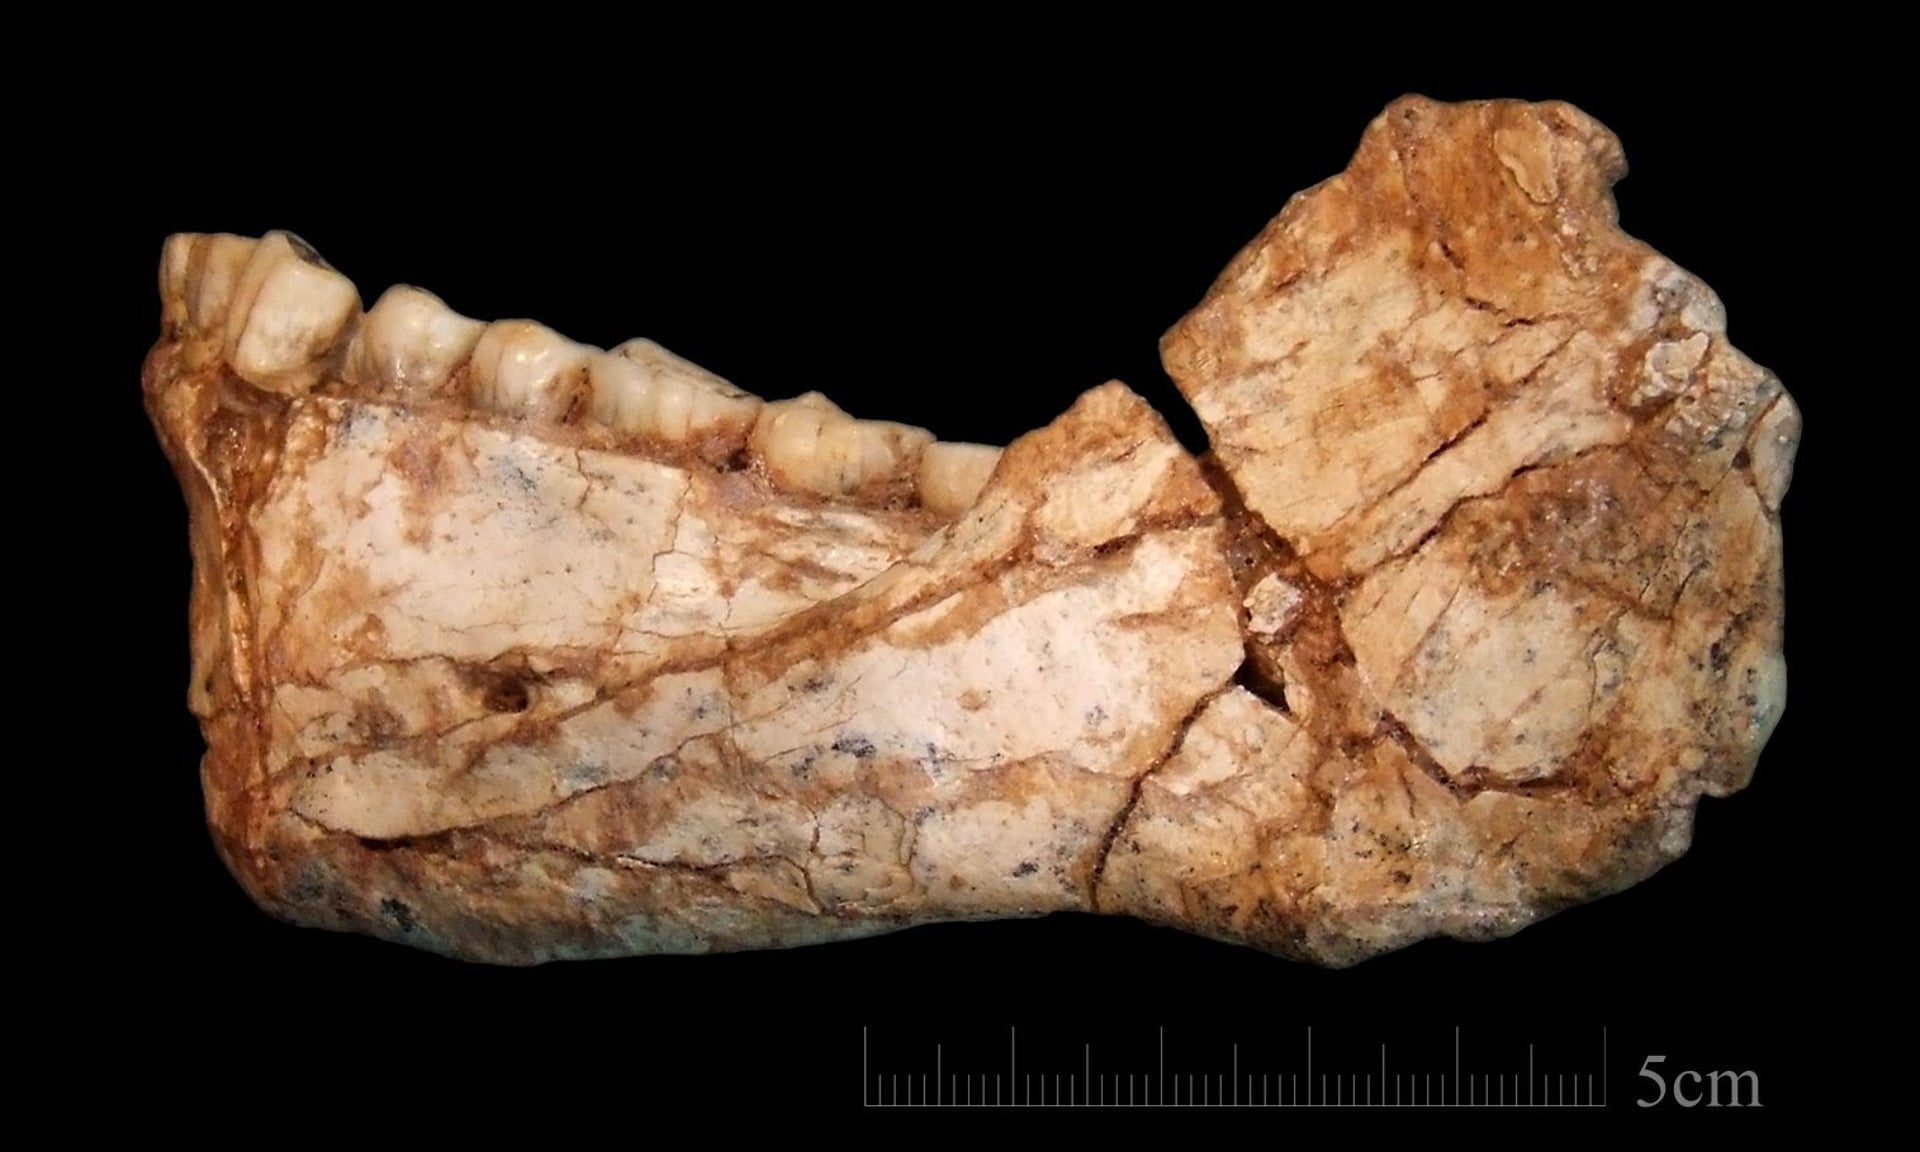 Mandible from Jebel Irhoud, Morocco: The bone morphology and the dentition display a mosaic of archaic and evolved features, clearly assigning it to the root of our own lineage, say archaeologists.